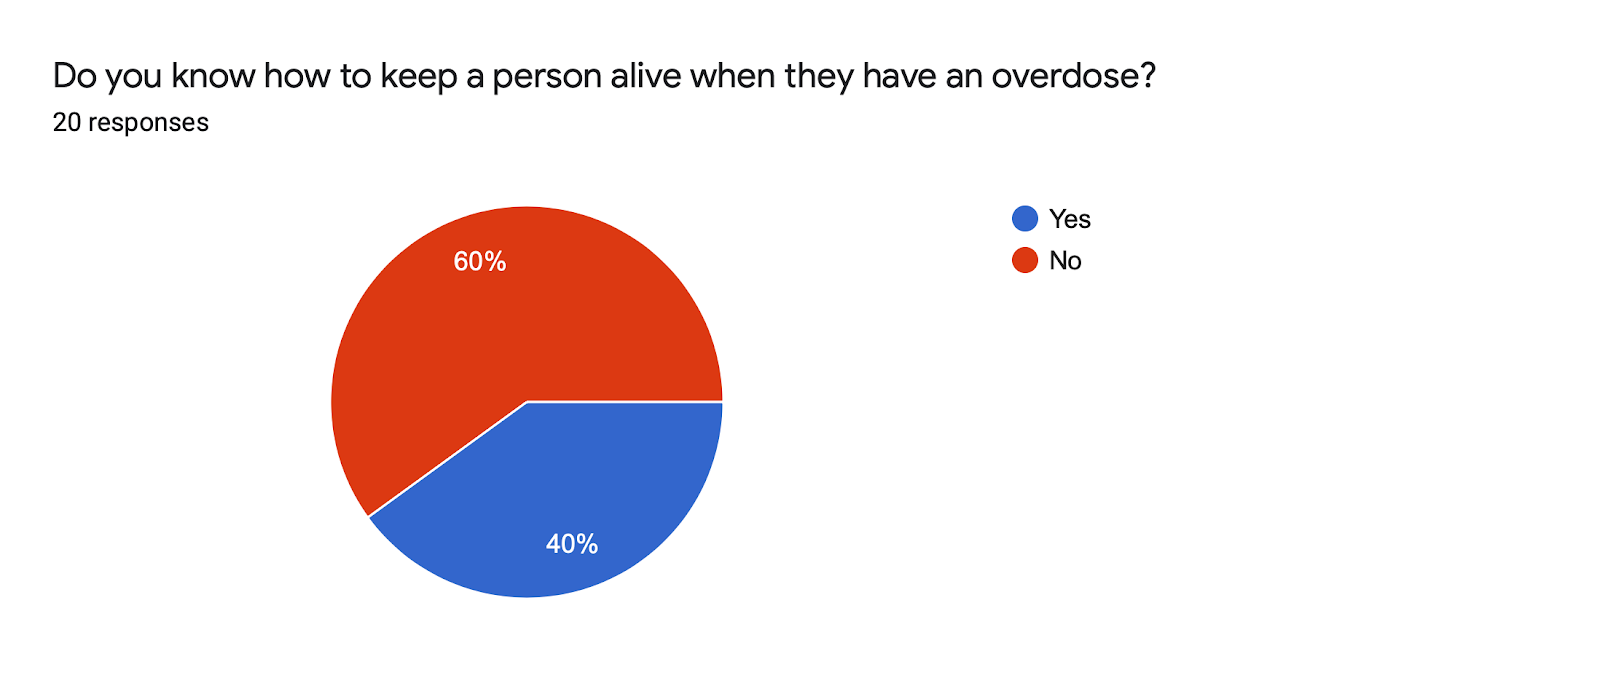 Forms response chart. Question title: Do you know how to keep a person alive when they have an overdose?. Number of responses: 20 responses.